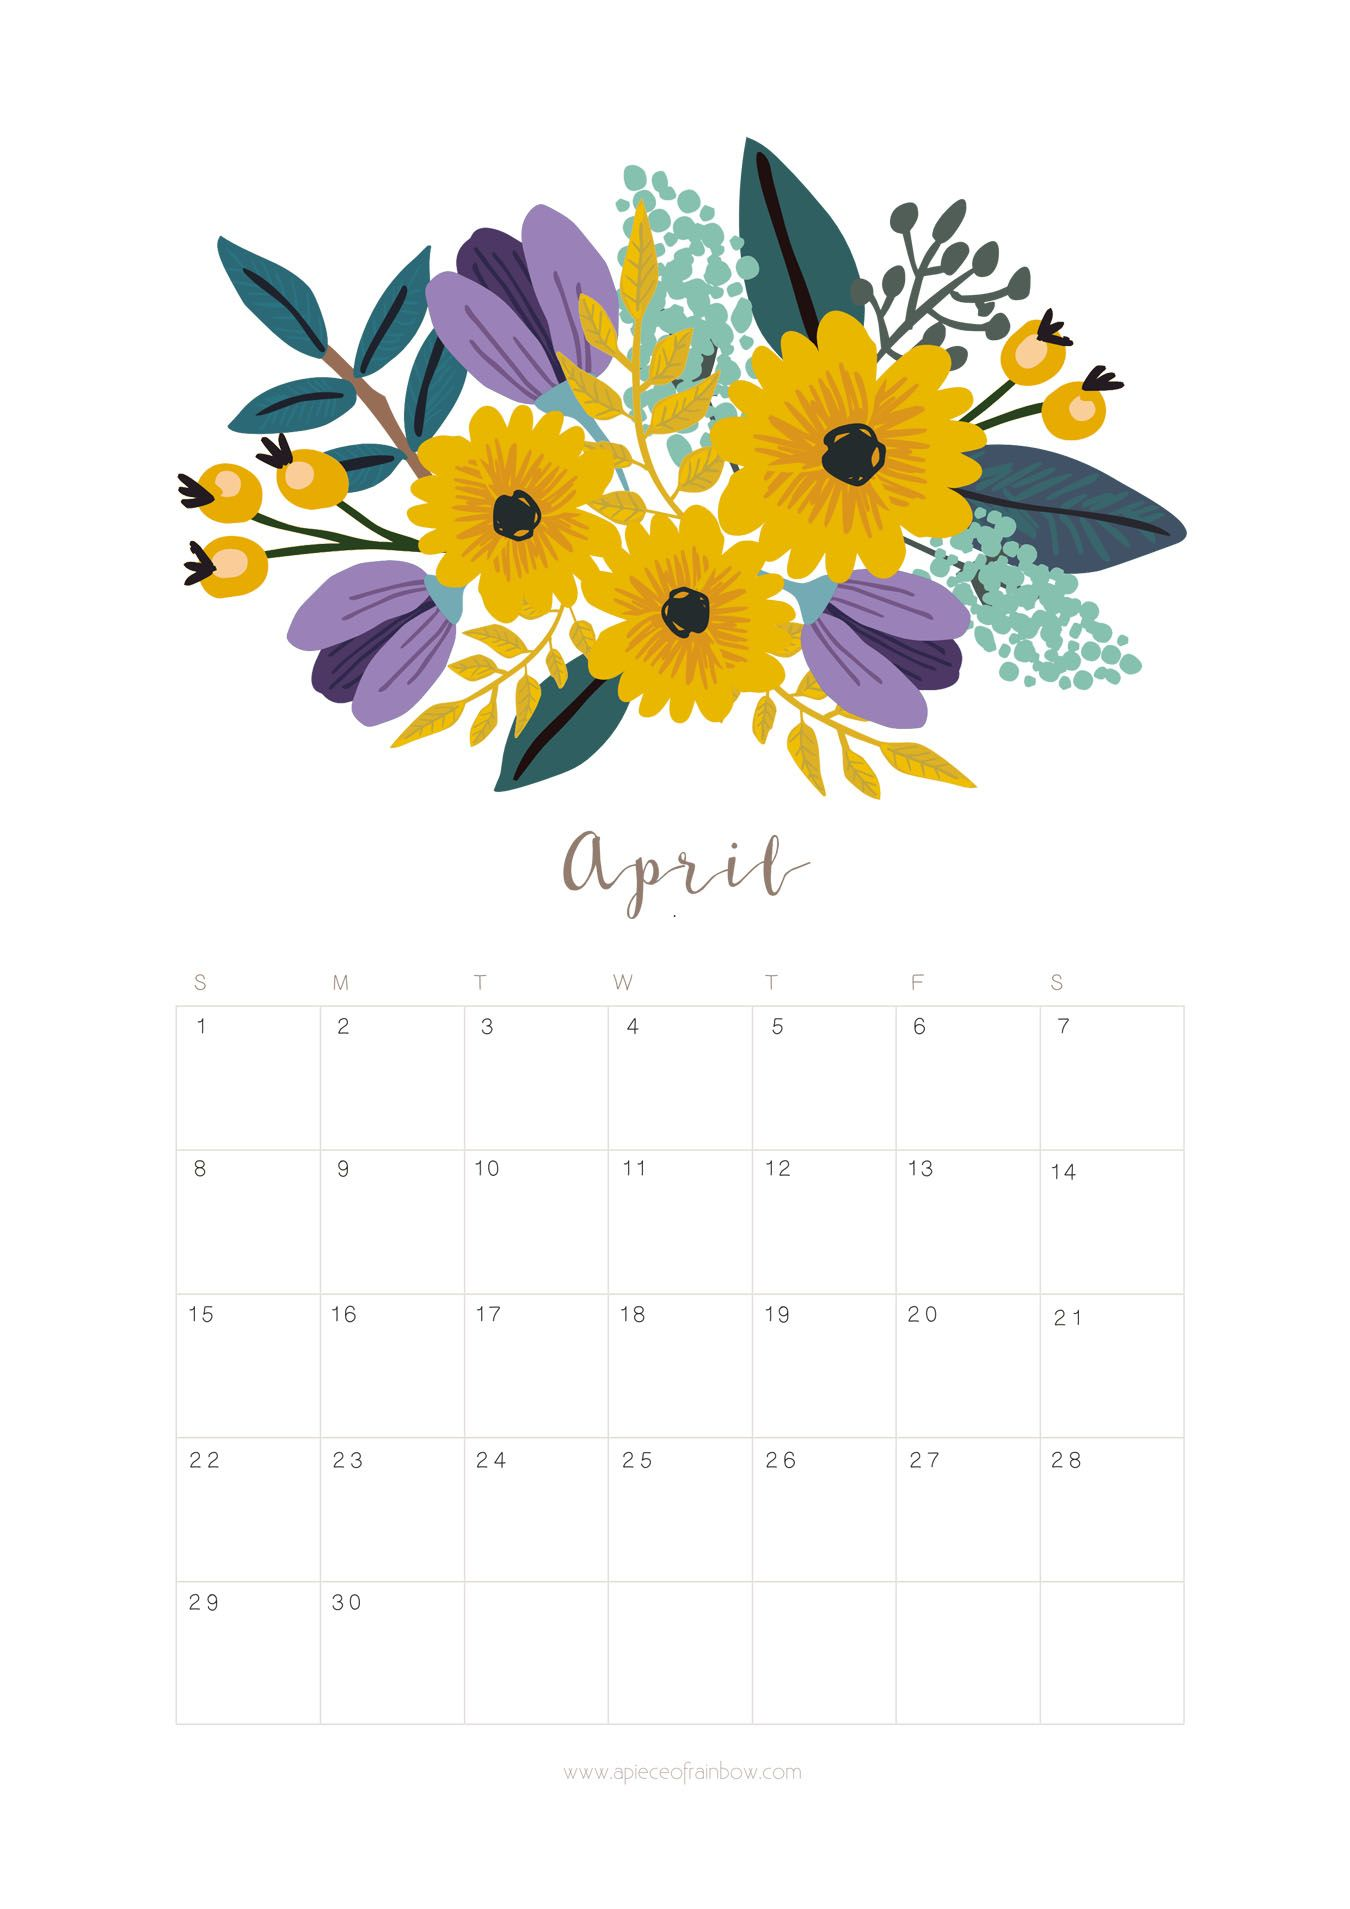 Calendar Flowers : Printable april calendar monthly planner flower